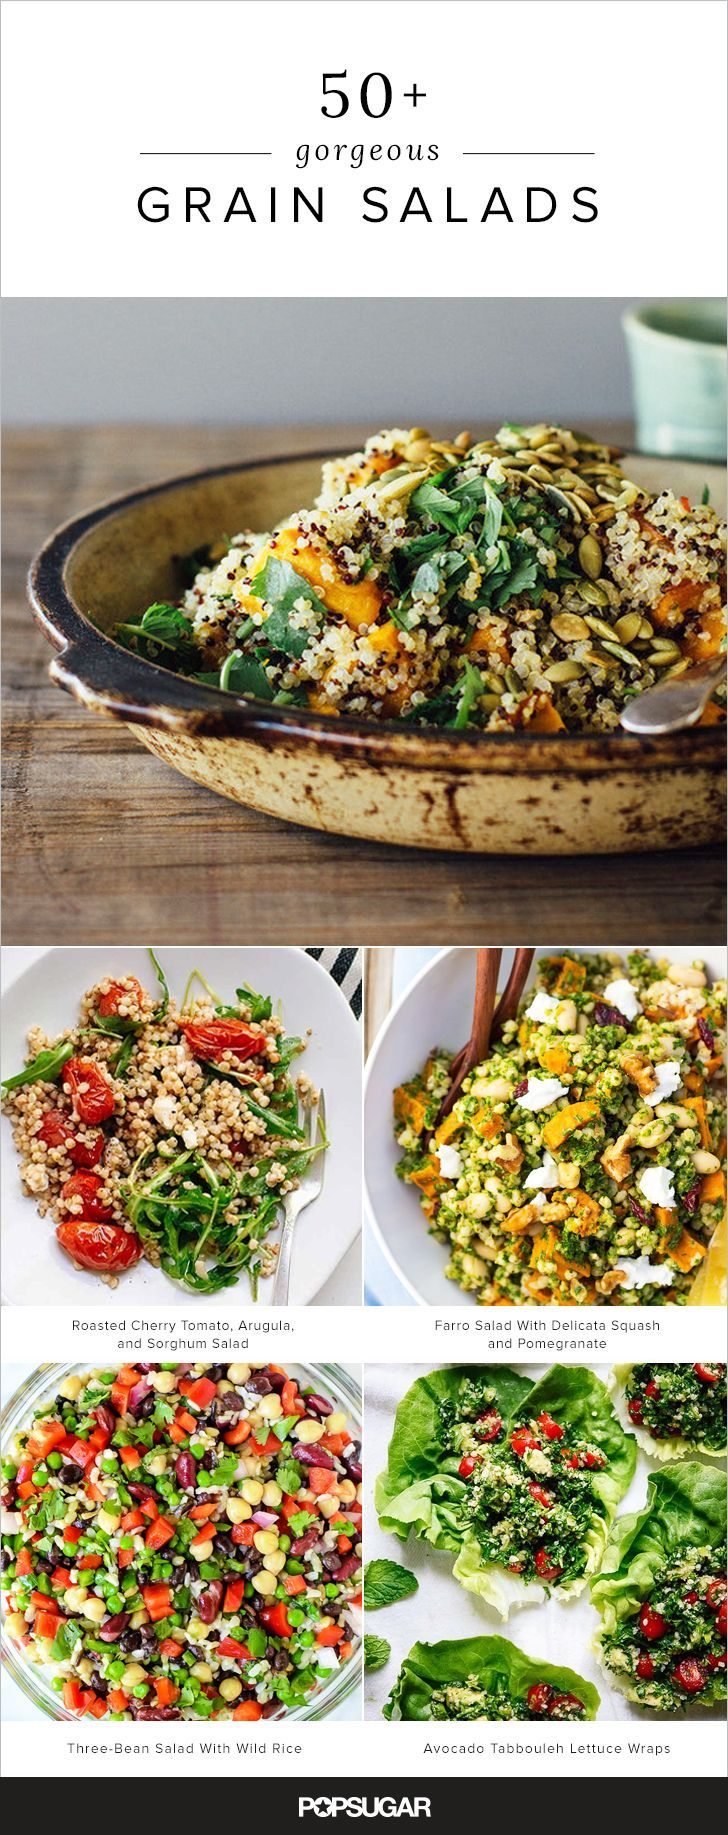 Few salads are as filling and tasty as grain salads like those made with bulgur, farro, wild rice, and quinoa (while technically a seed, quinoa shares many qualities with whole grains, so we're counting it). These whole grains provide an ideal base for a variety of flavors, and are easily translated into meal-worthy salads, perfect for brown bag lunches, dinner parties, and more. Keep reading for more than 50 ideas.